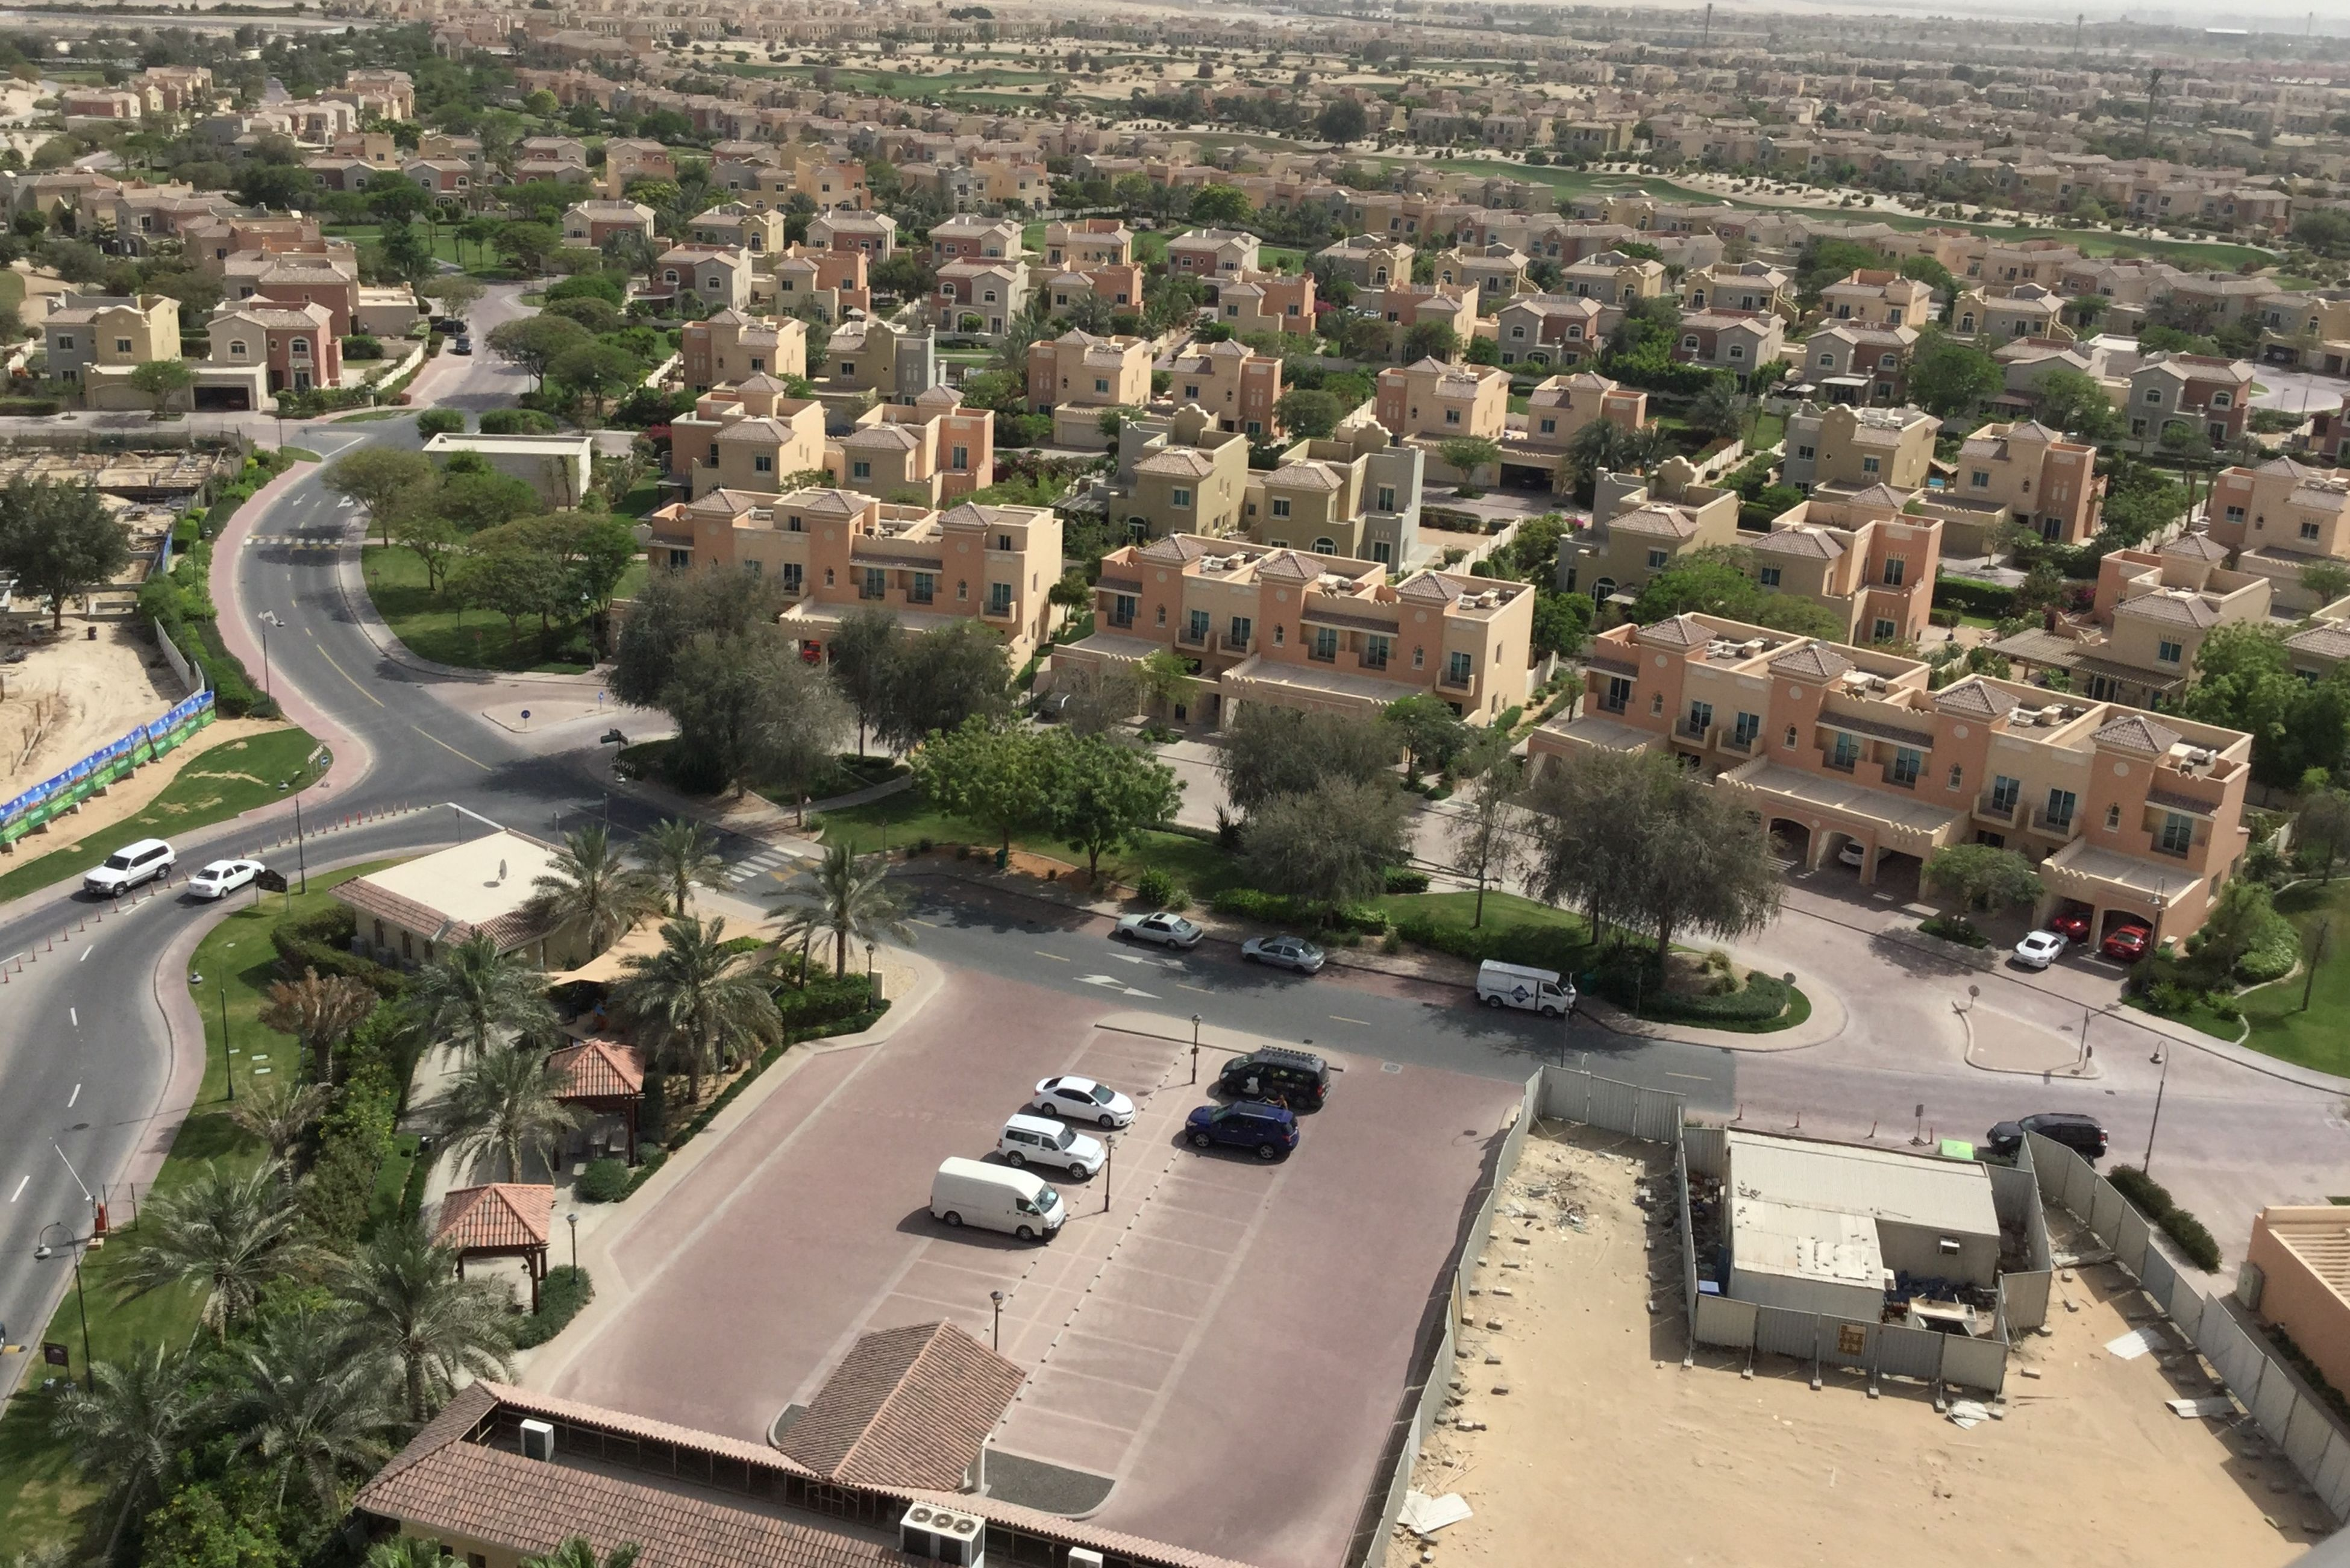 high angle view, building exterior, architecture, built structure, city, road, transportation, cityscape, car, aerial view, crowded, tree, residential district, street, land vehicle, residential building, elevated view, residential structure, city life, mode of transport